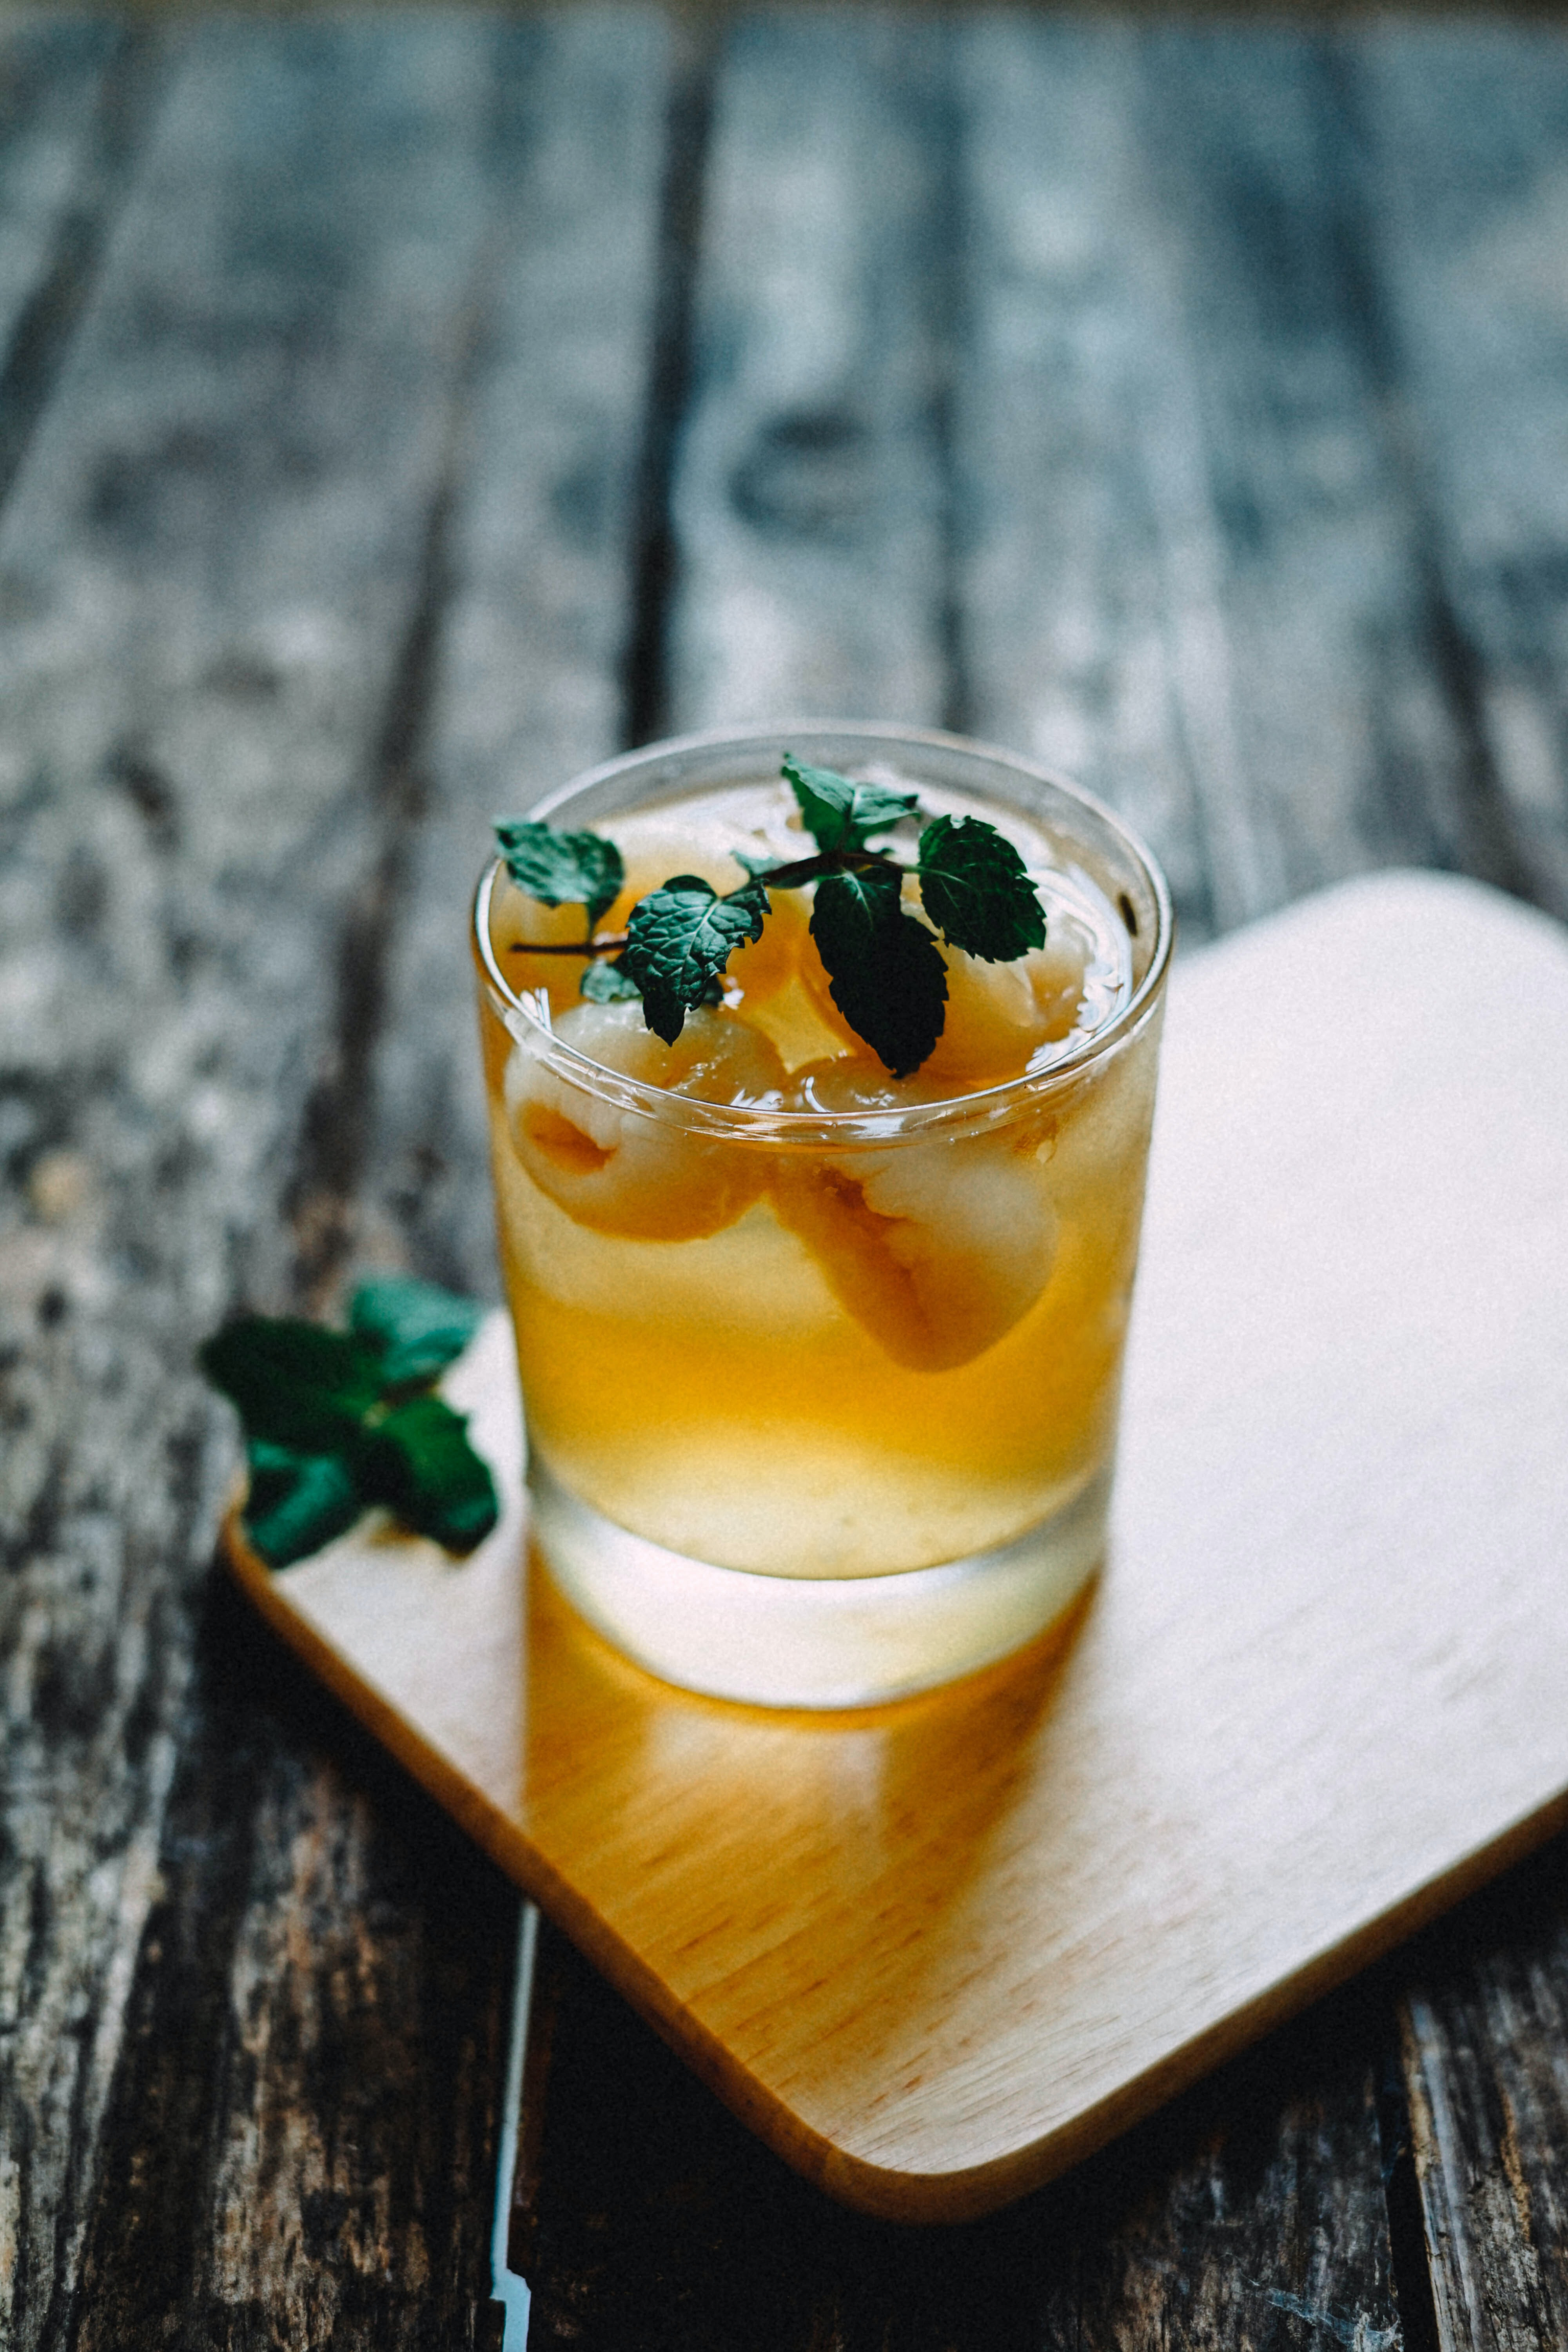 A cold cocktail whiskey with leaves on a table